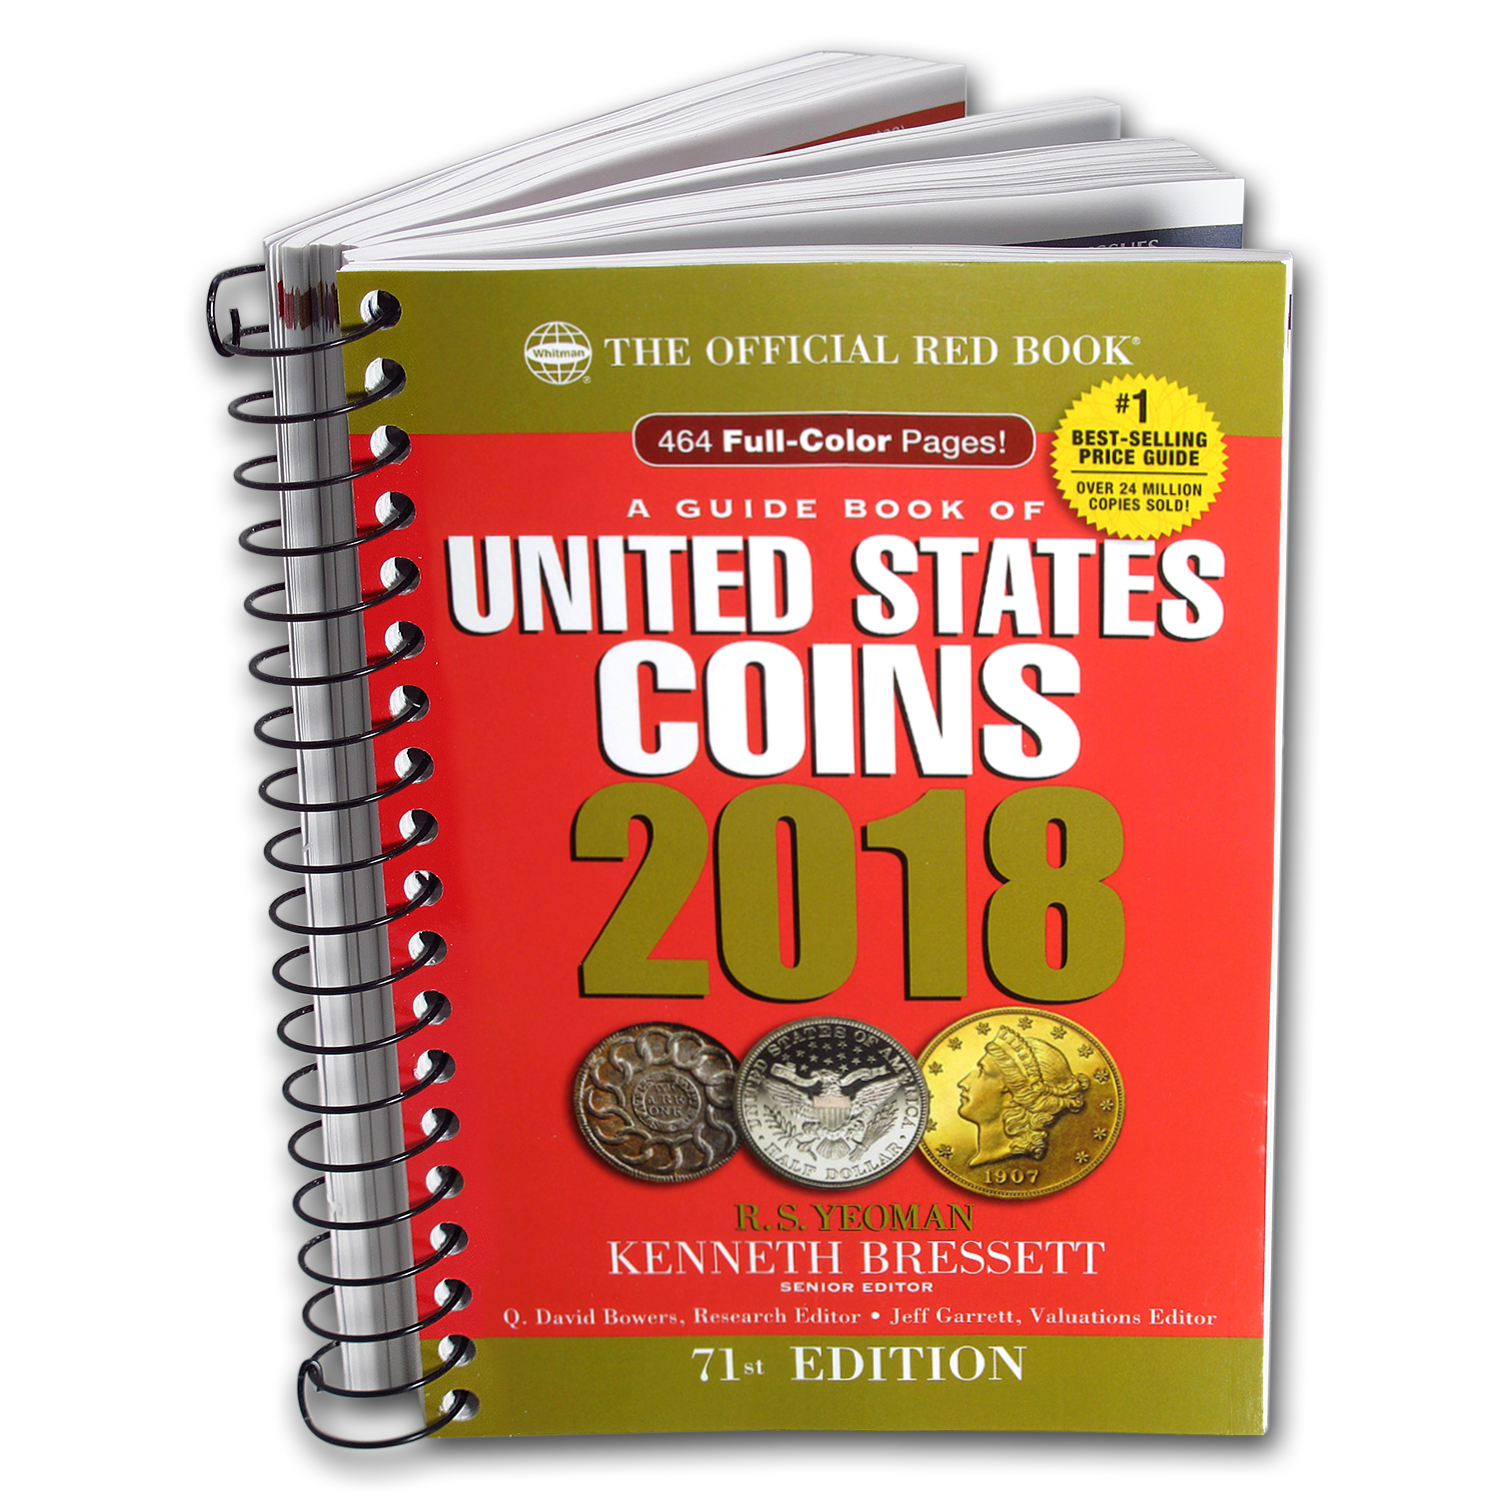 2018 Red Book of United States Coins - Bressett & Yeoman (Spiral)